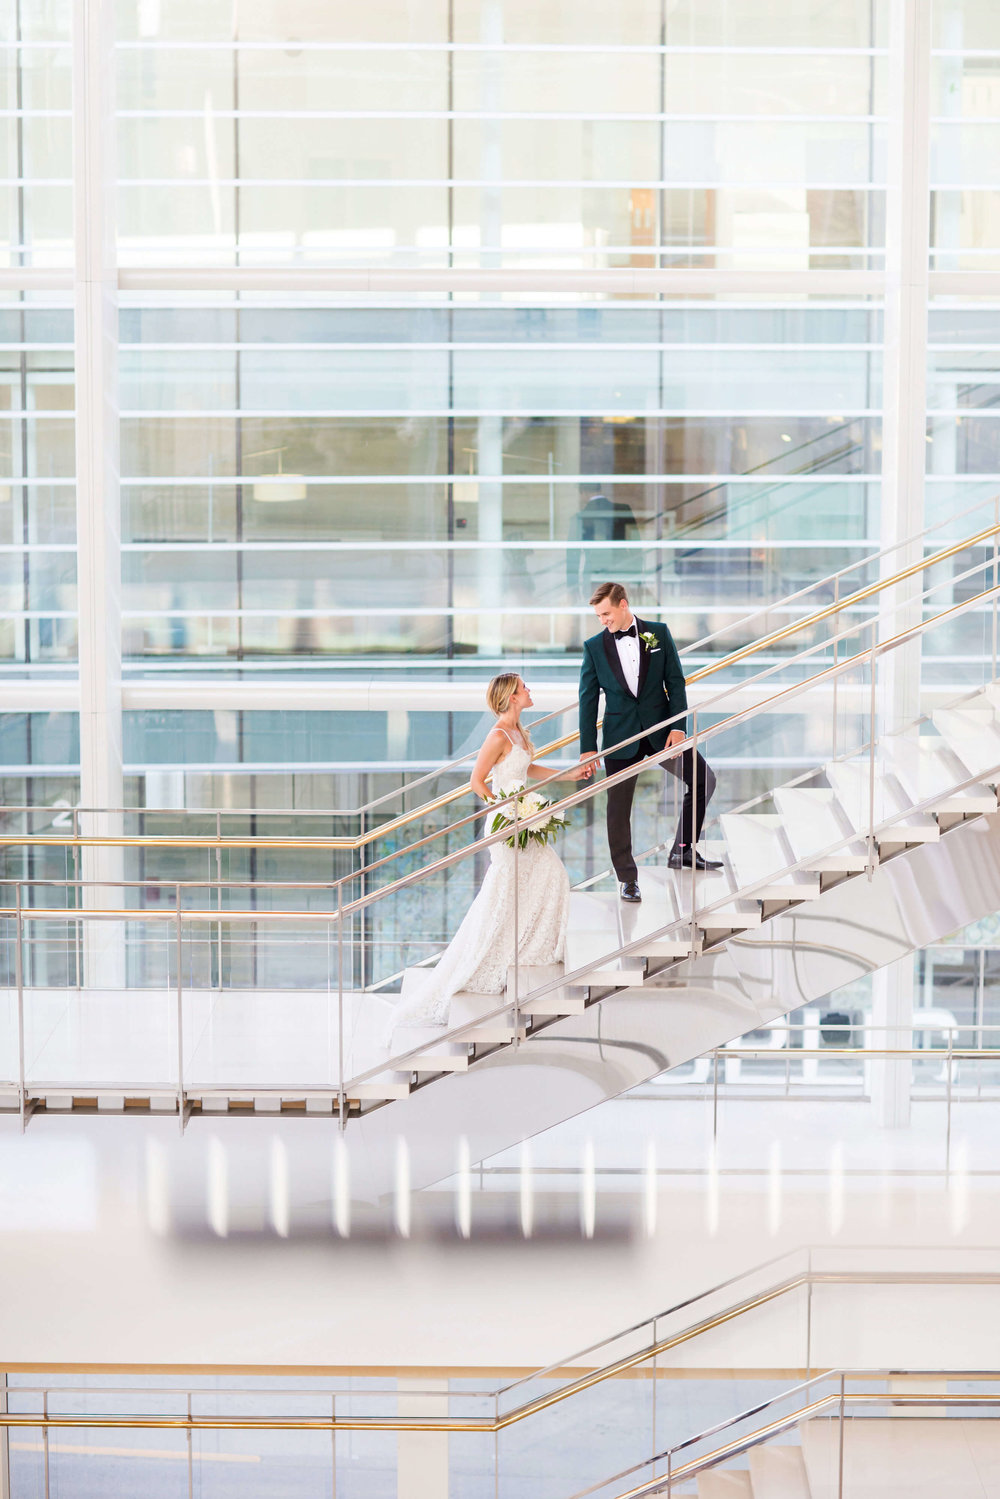 bride and groom walking up the stairs | Minnesota wedding photographer Studio KH wedding dress details | wedding blog | Sixpence Events 70 Ways to Photograph Your Wedding Dress.jpg